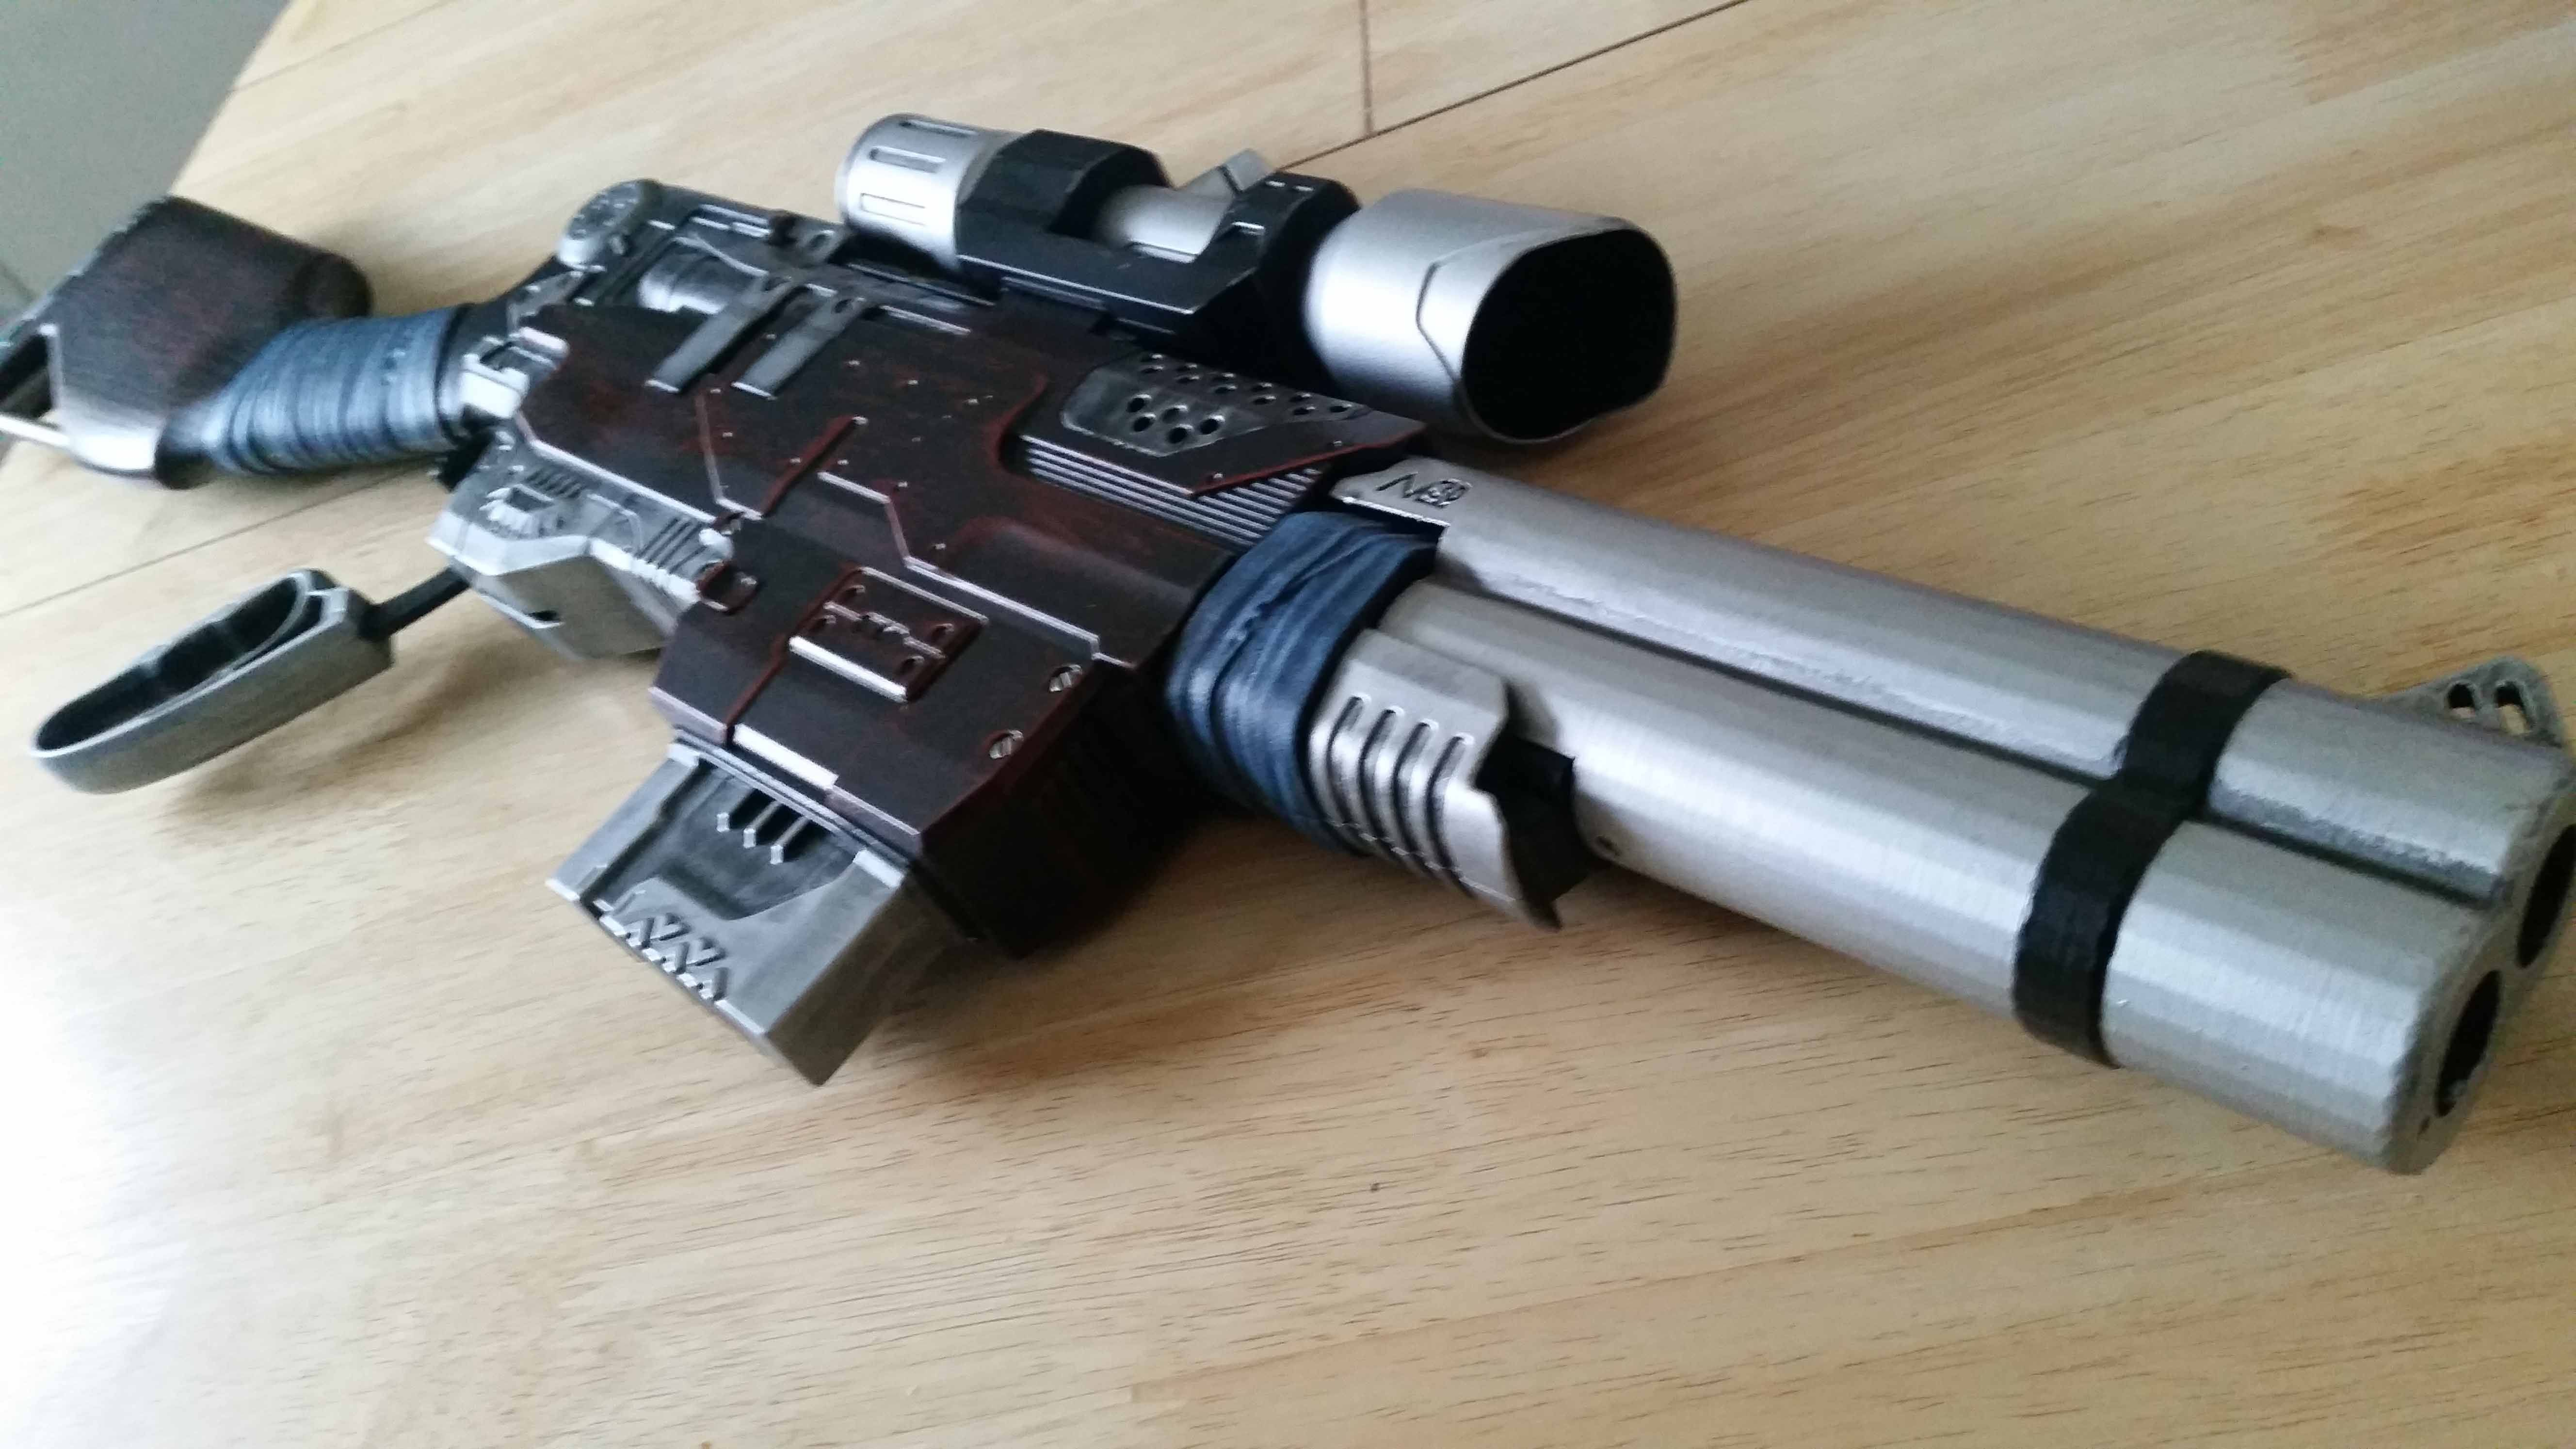 Front view of the Jurassic Park inspired Nerf Slingfire with 3D printed  barrel